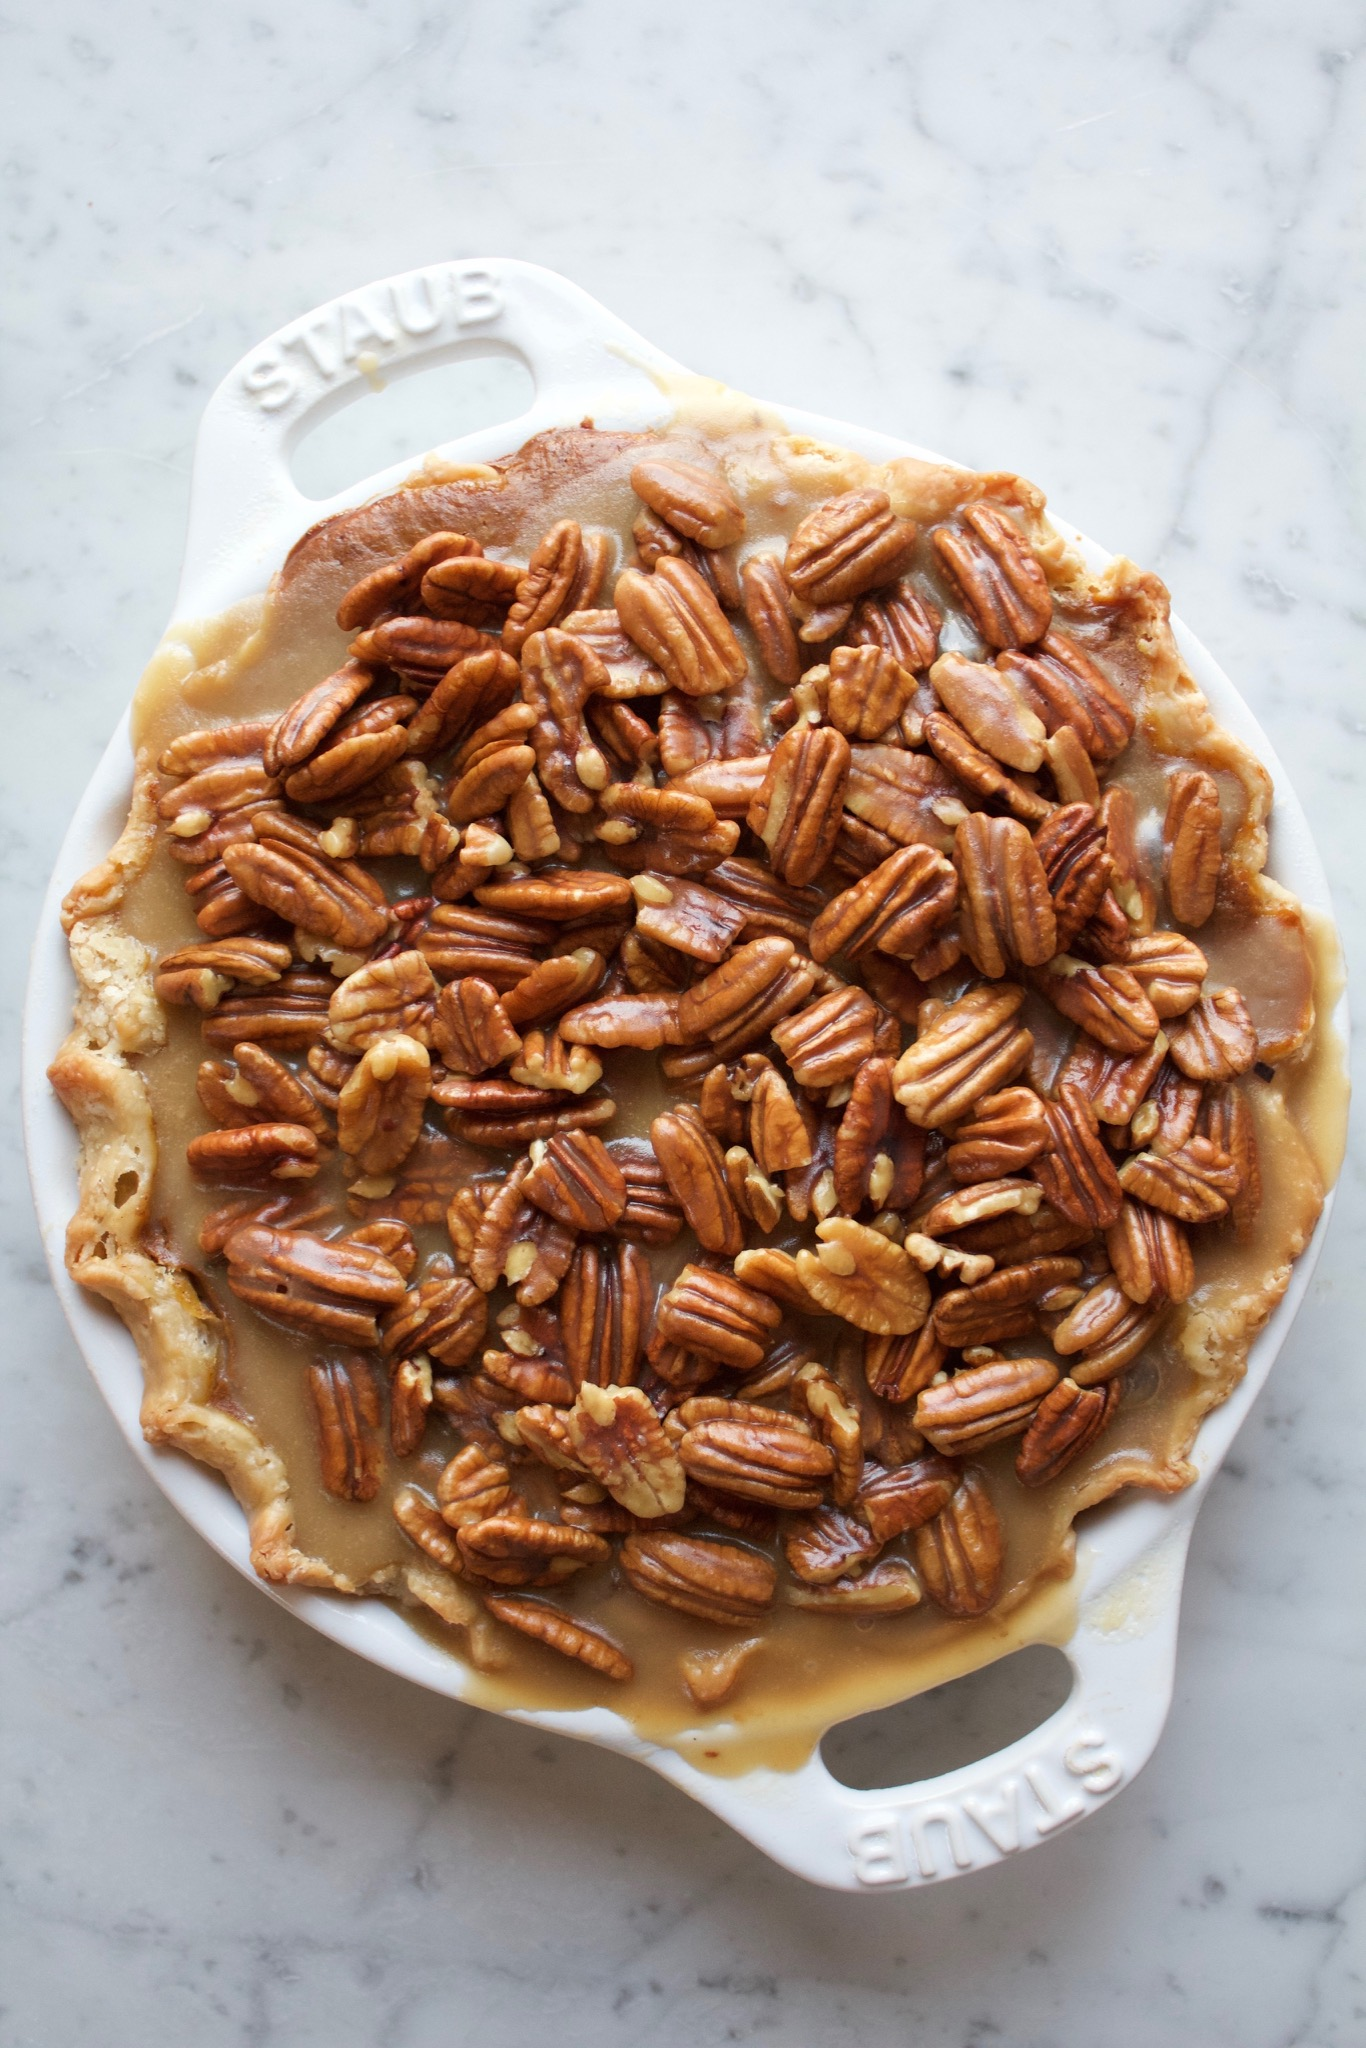 Pecan Apple Pumpkin Pie! This is the ultimate Thanksgiving pie (three pies in one!) with a layer of spiced apples, pumpkin pie filling and finished off with caramelized pecans. It's delicious!